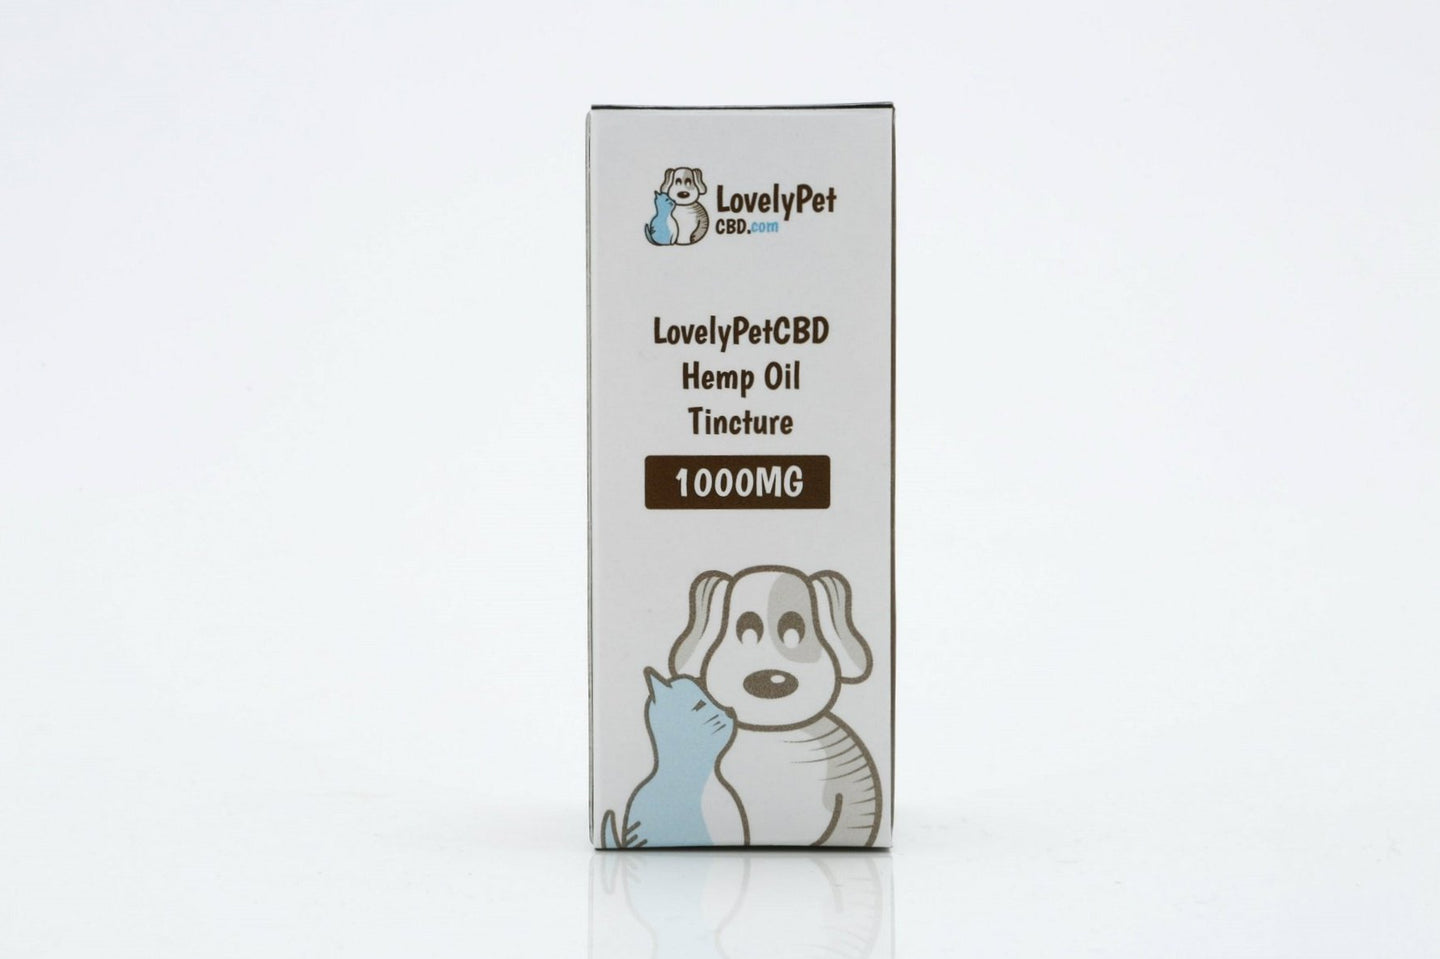 LovelyPetCBD Hemp Oil Tincture -  1000MG Per Bottle